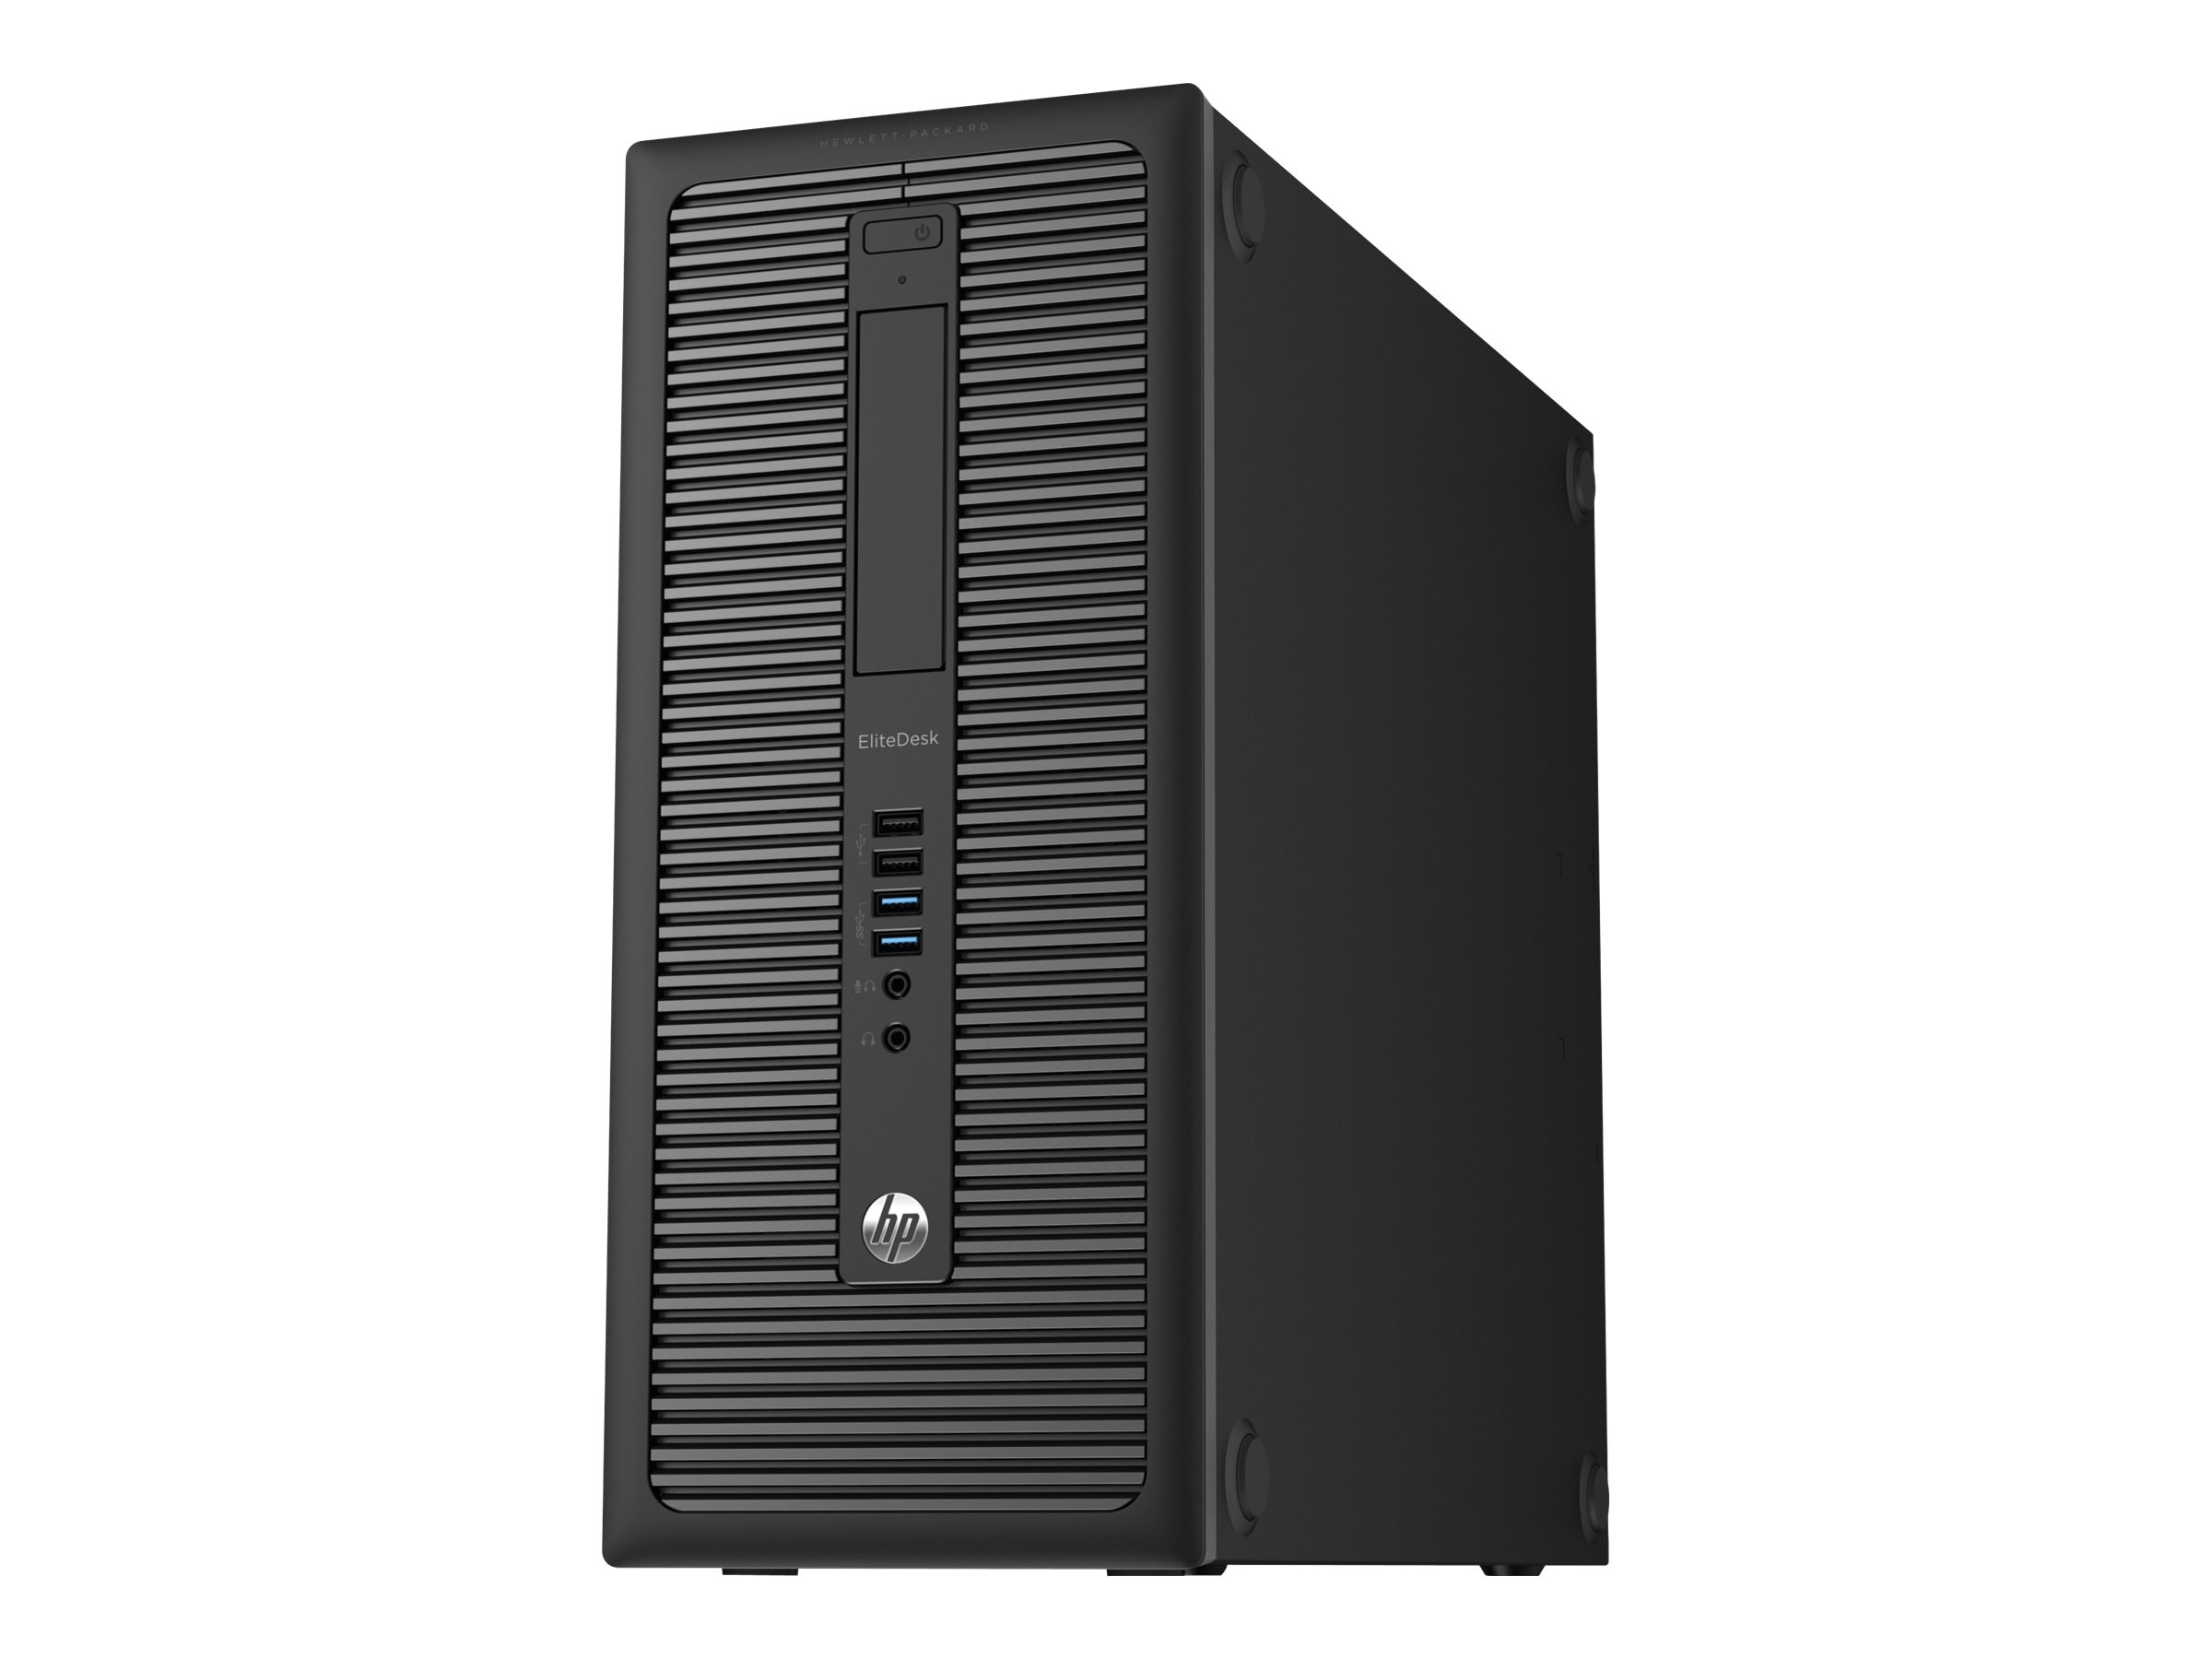 HP EliteDesk 800 Core i5-4590S 8GB 500GB